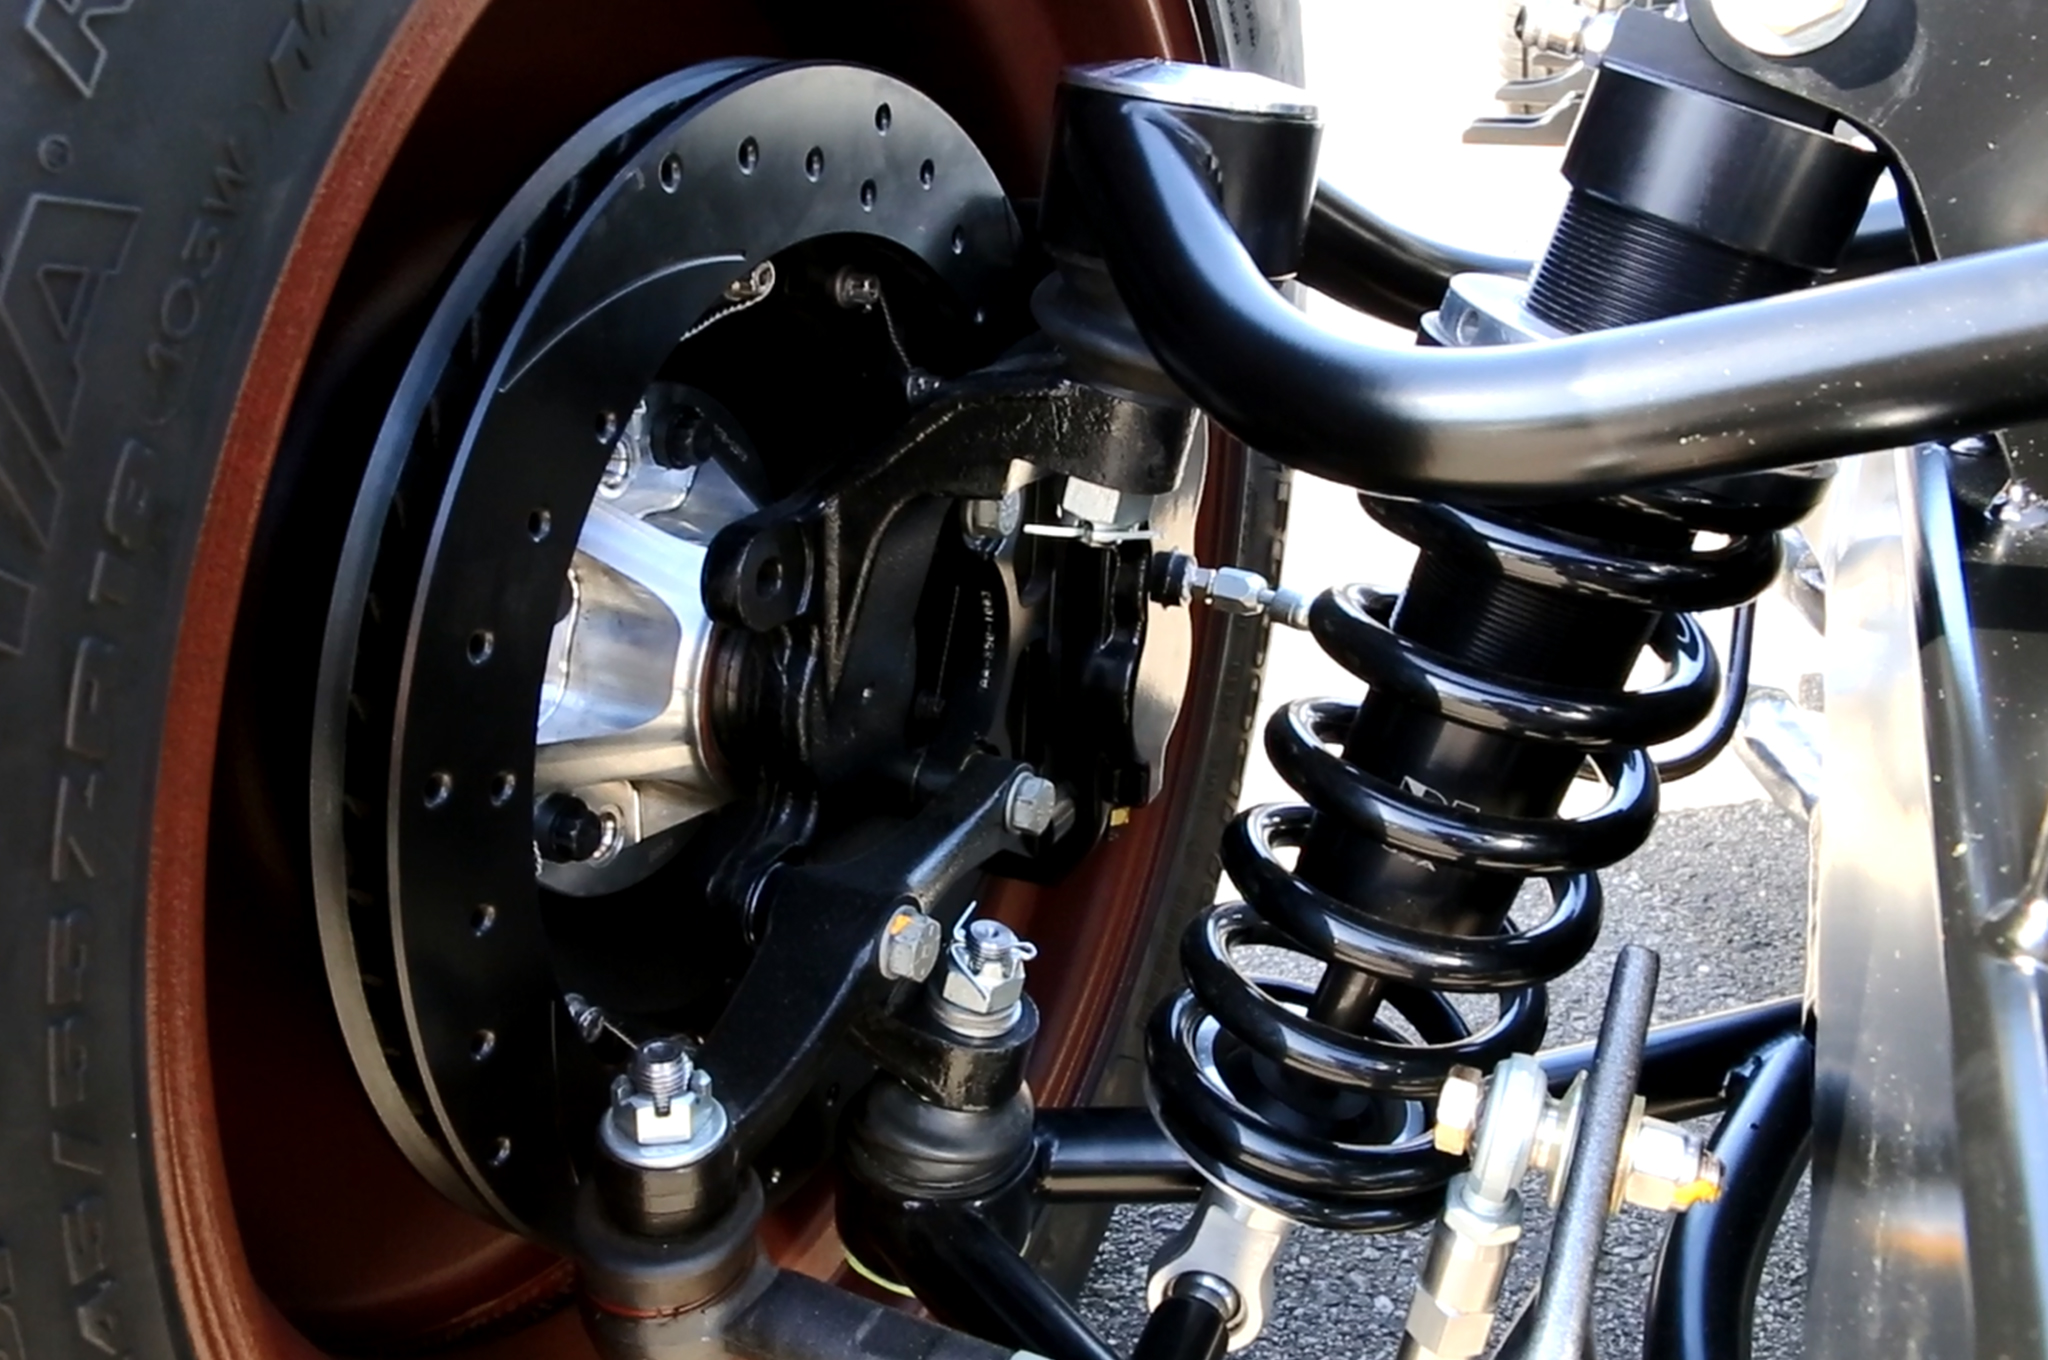 Wilwood six-piston calipers clamp a drilled and slotted 13-inch rotor in the front. A four-piston setup handles the rear.